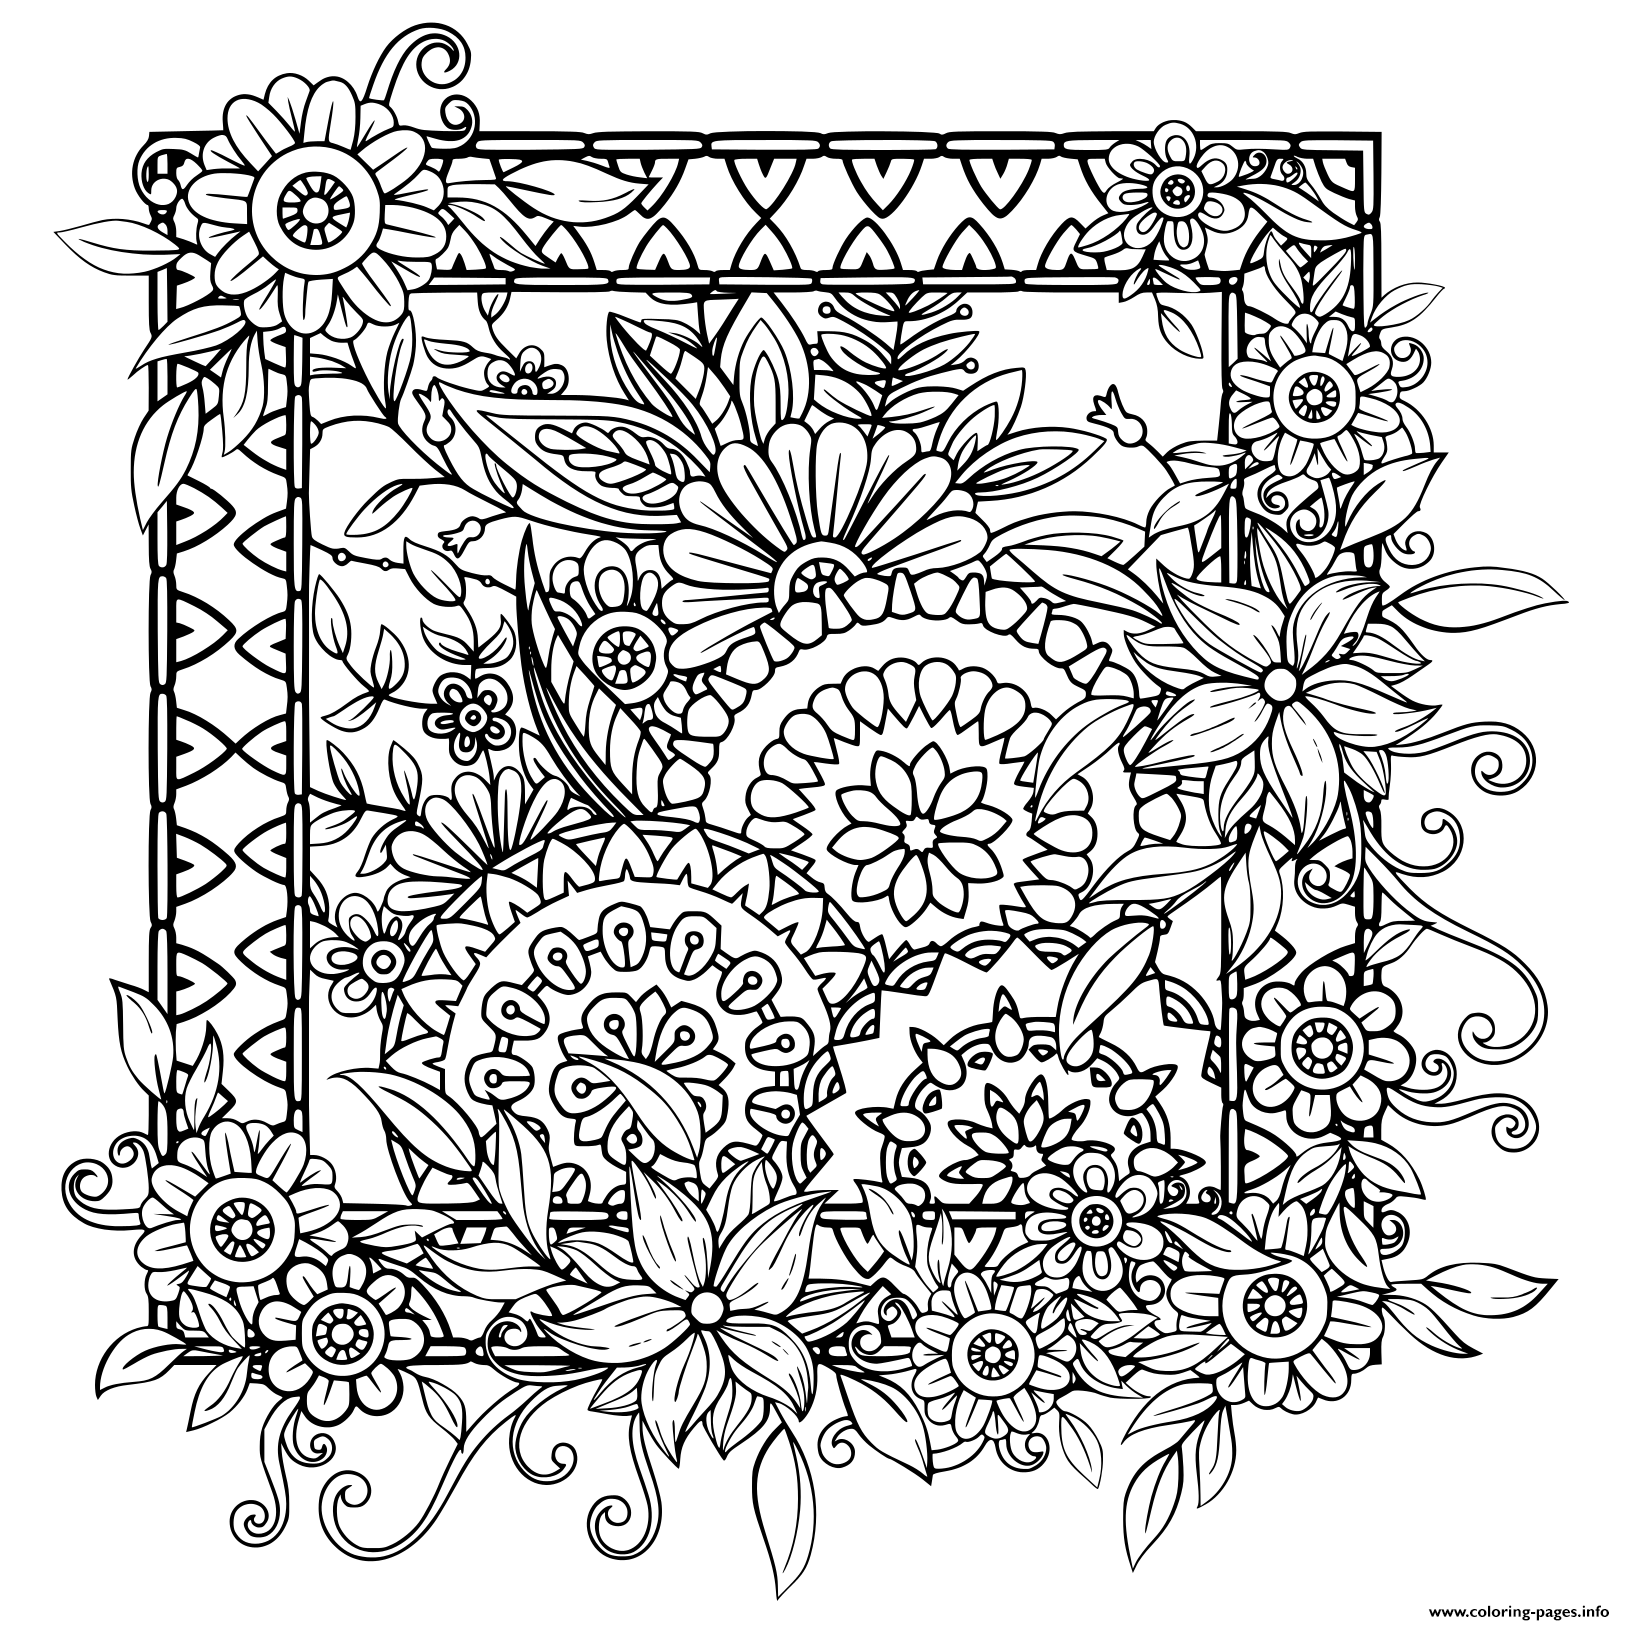 black and white coloring pages for adults coloring pages coloring book printable black and white pages adults white black coloring and for